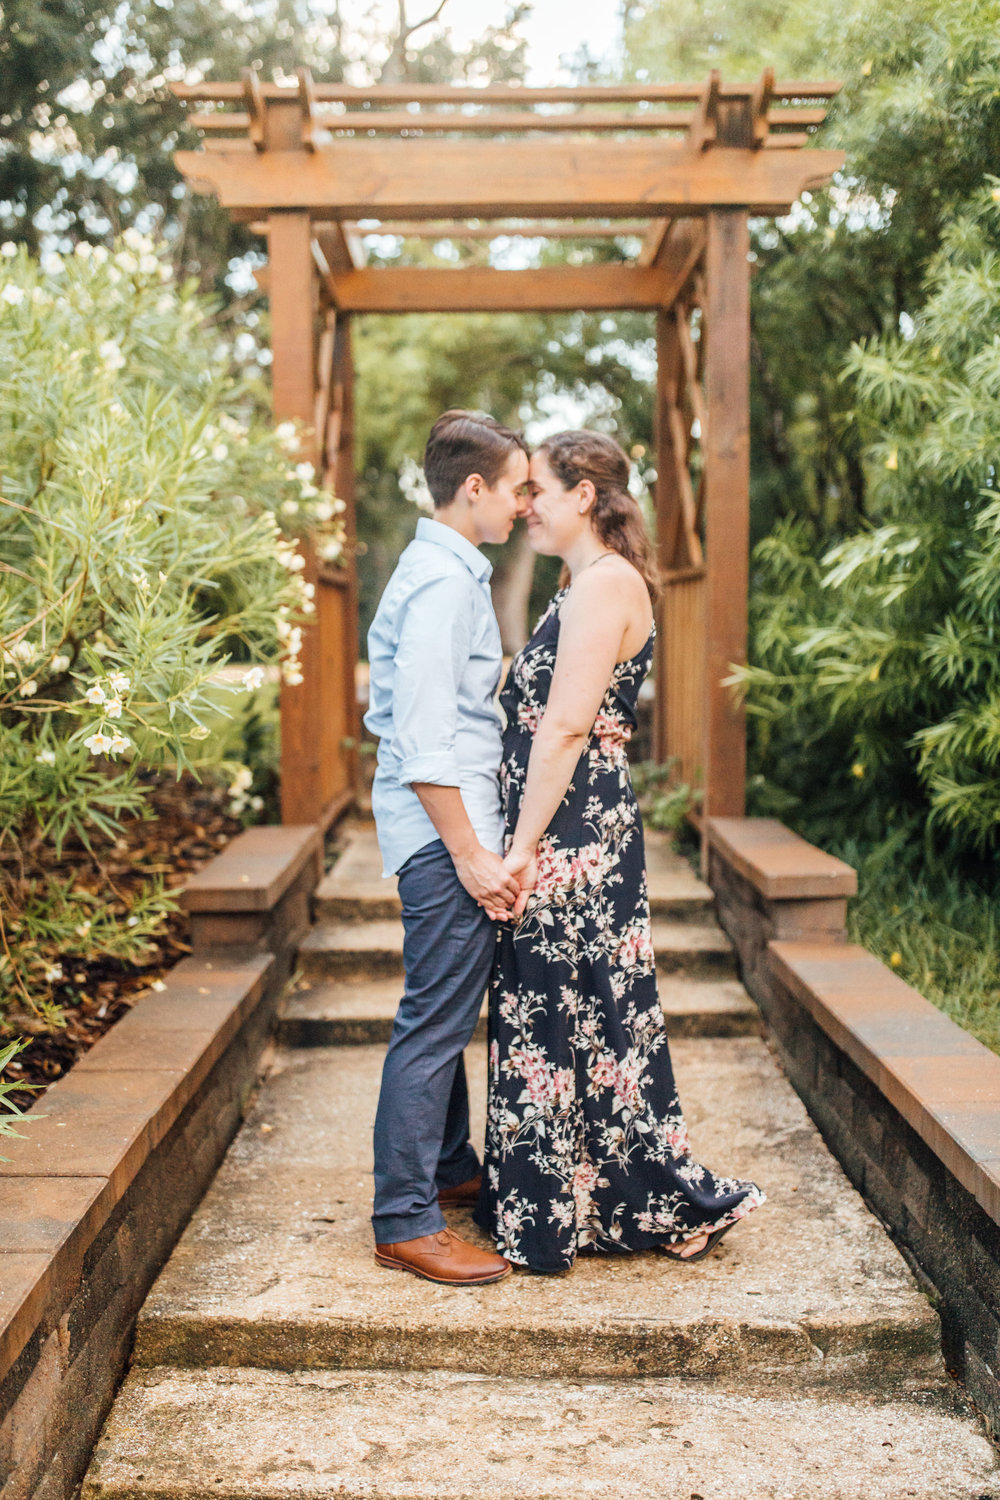 Orlando Natural Forest State Park Engagement Photos- Romantic LGBT Engaged Couples photos117.jpg